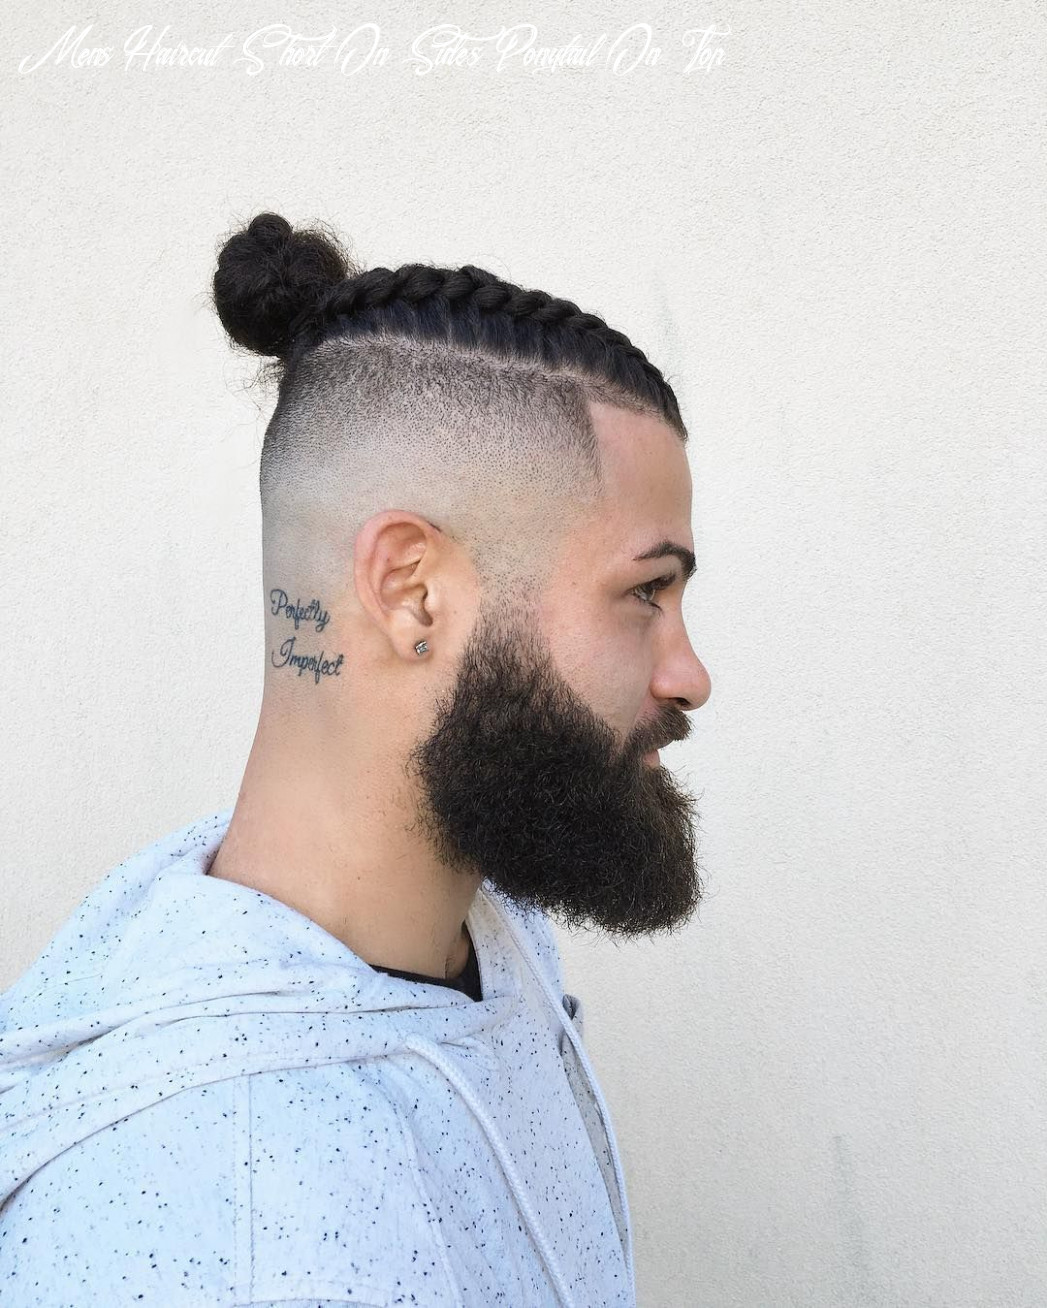 Pin on haircuts mens haircut short on sides ponytail on top